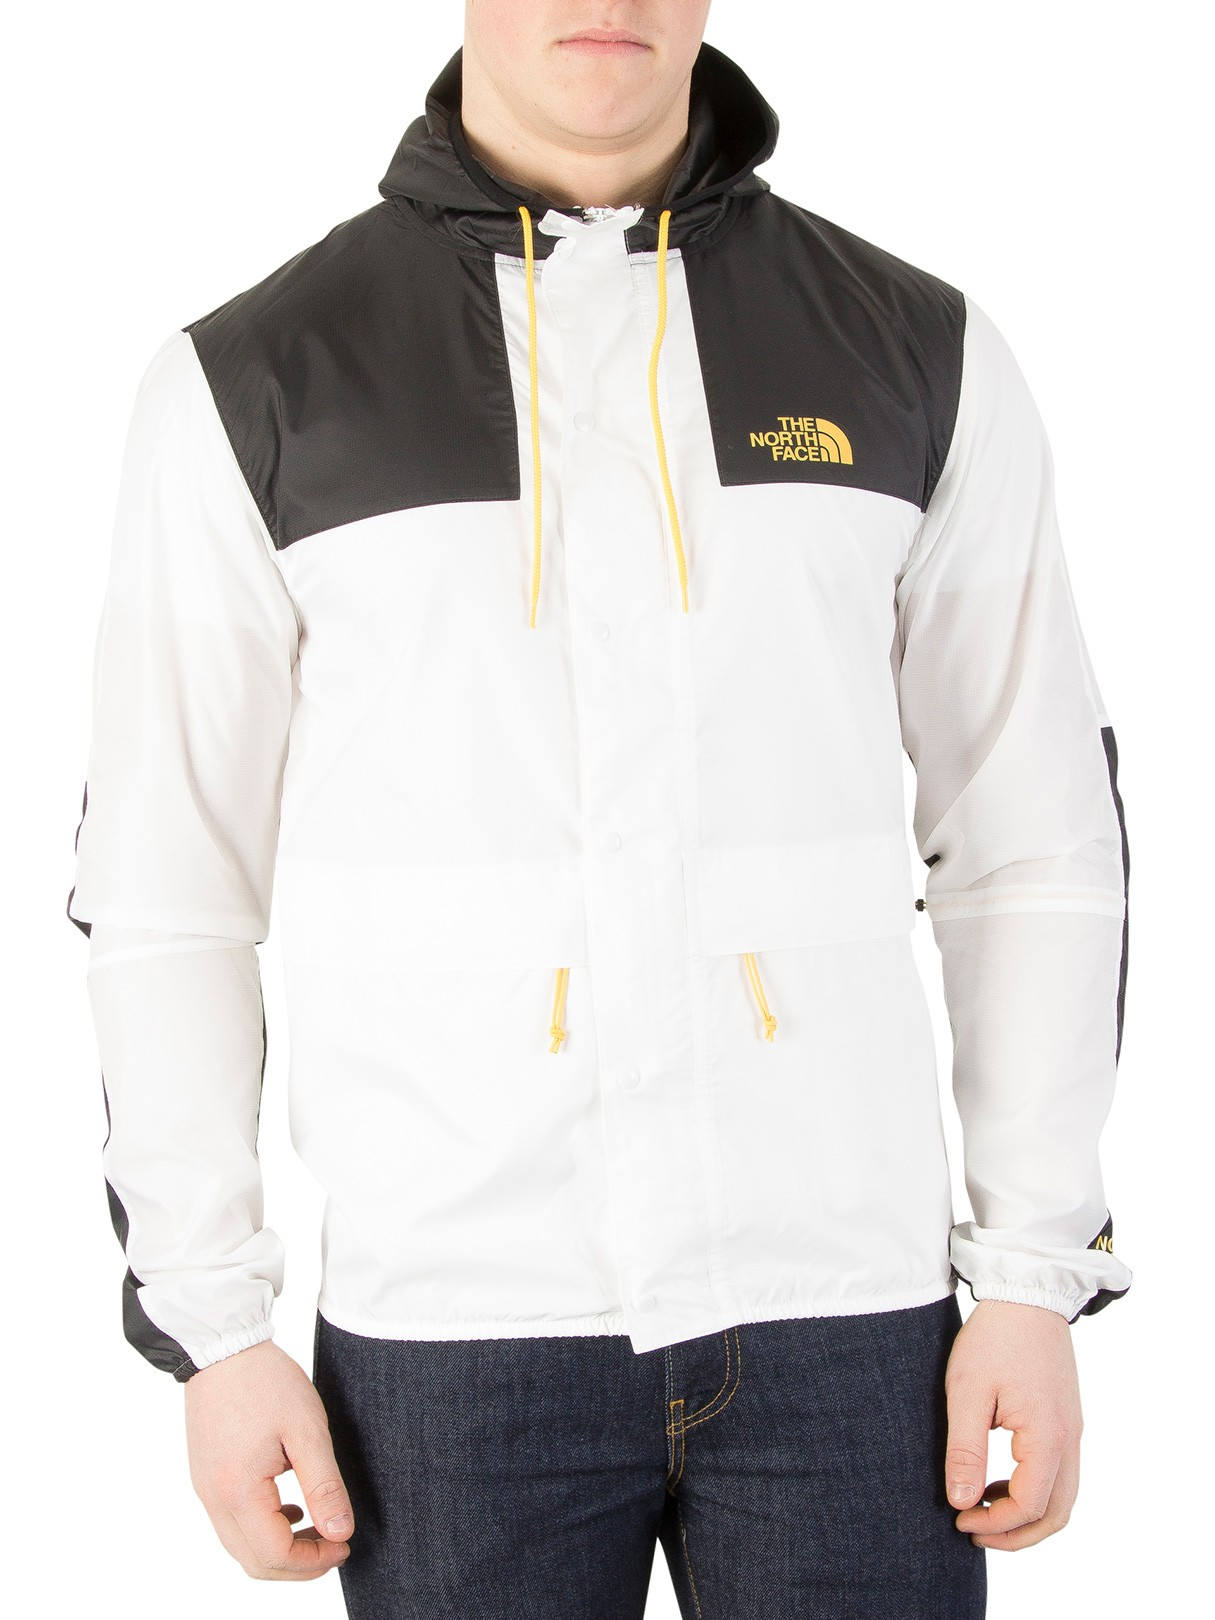 Leather Jackets & Coats|Men's The North Face White/Black 1985 Mountain Jacket